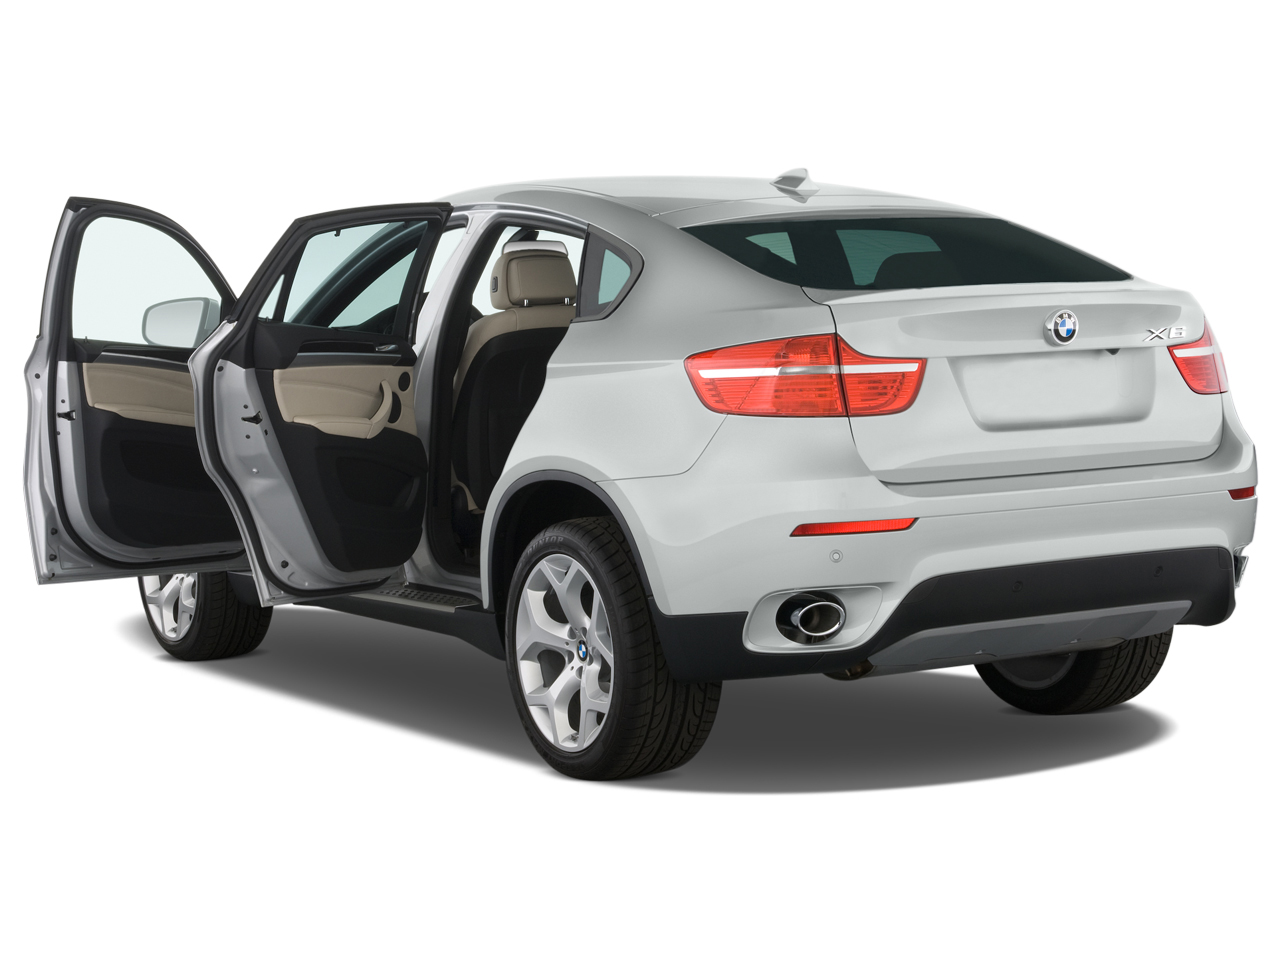 2008 Bmw X6 Latest News Features And Reviews Automobile Magazine